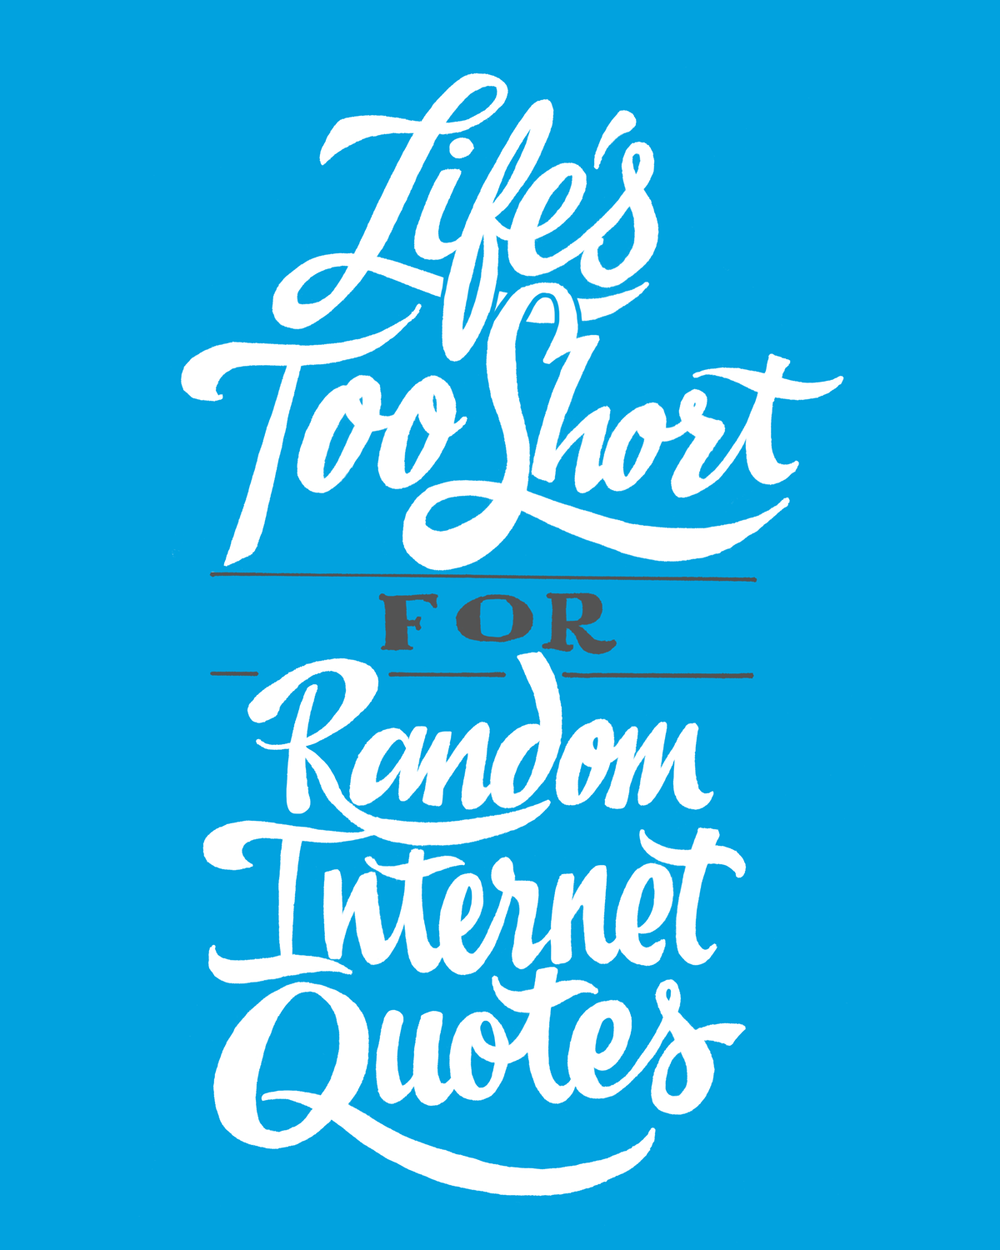 lifes too short for internet quotes